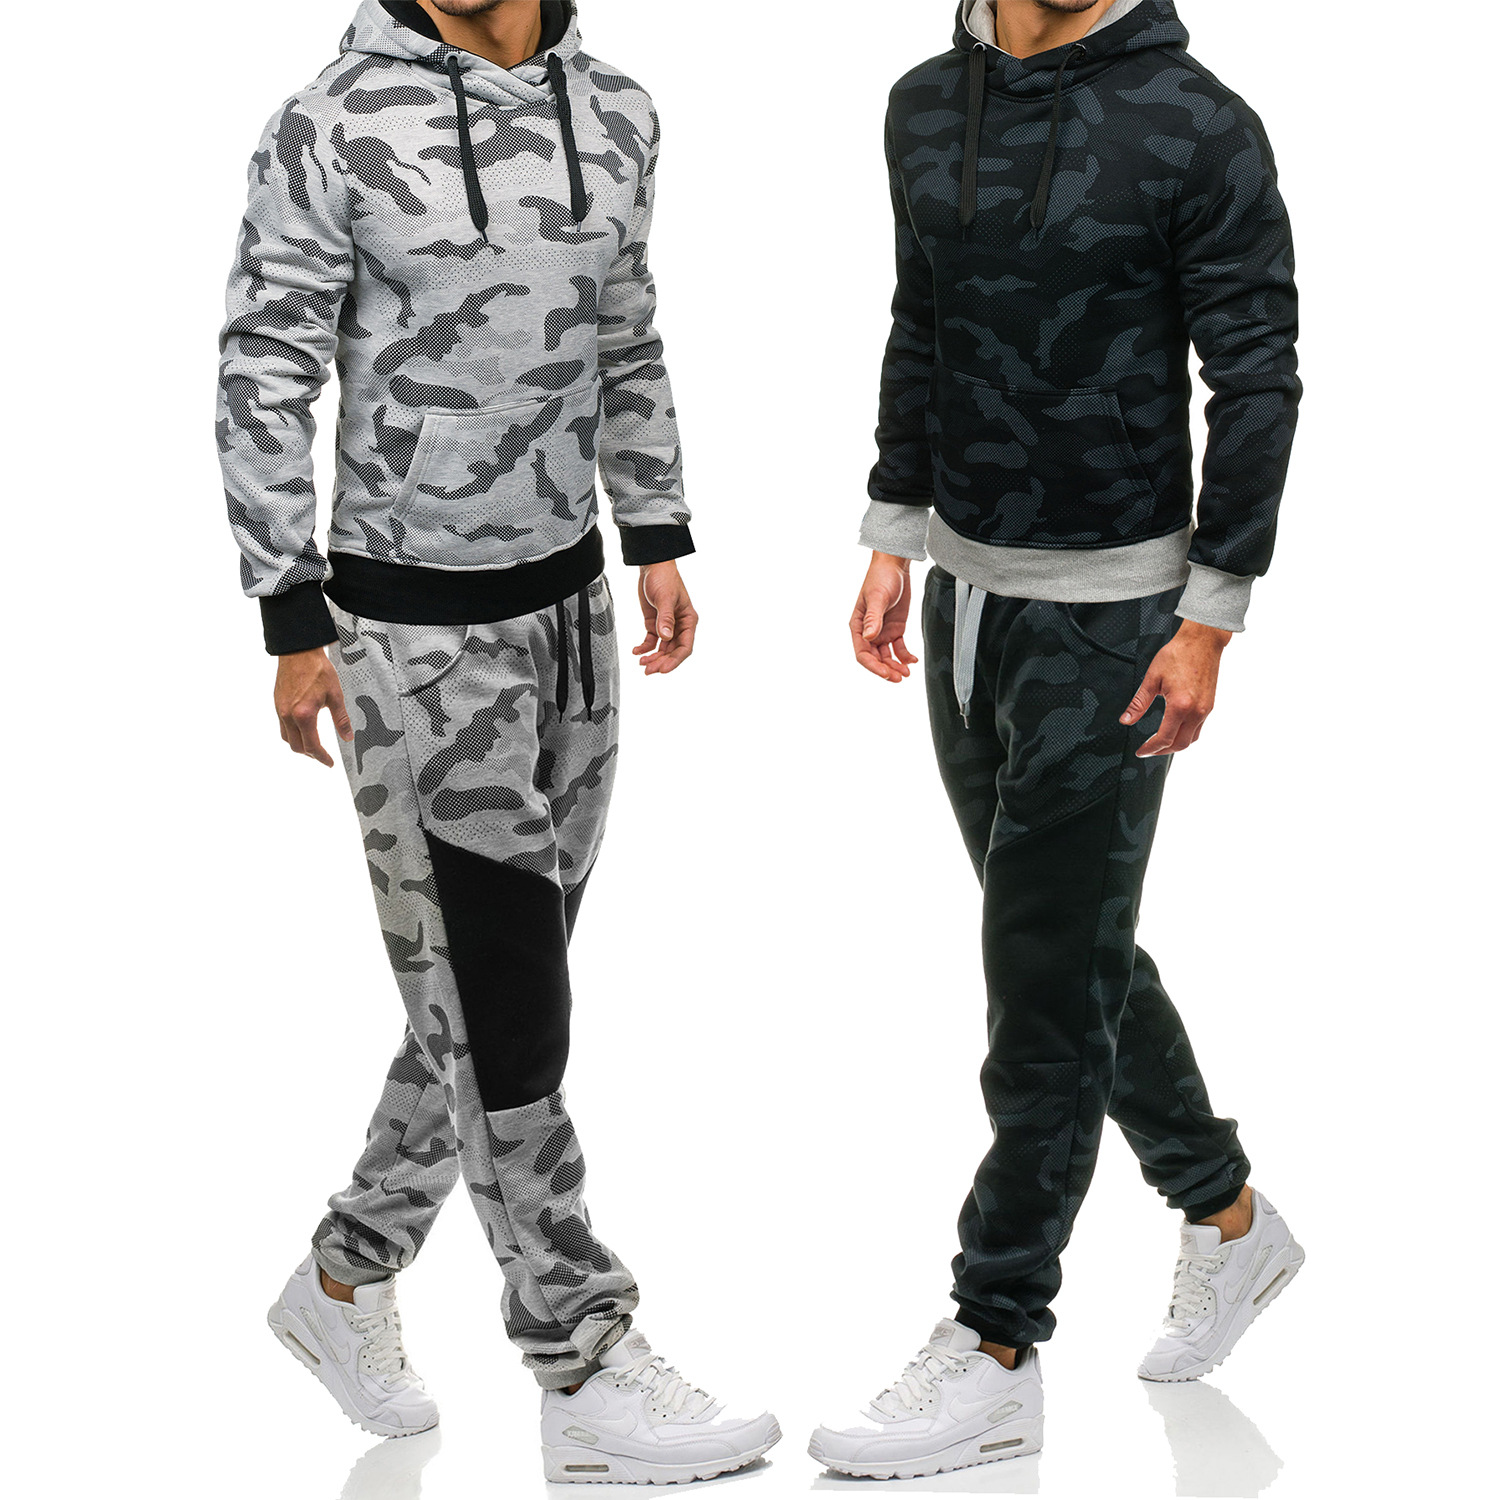 2018 Foreign Trade Men Fashion Camouflage Men's Sports Leisure Suit Youth Jogging Suits Men's Two-Piece Set Fashion